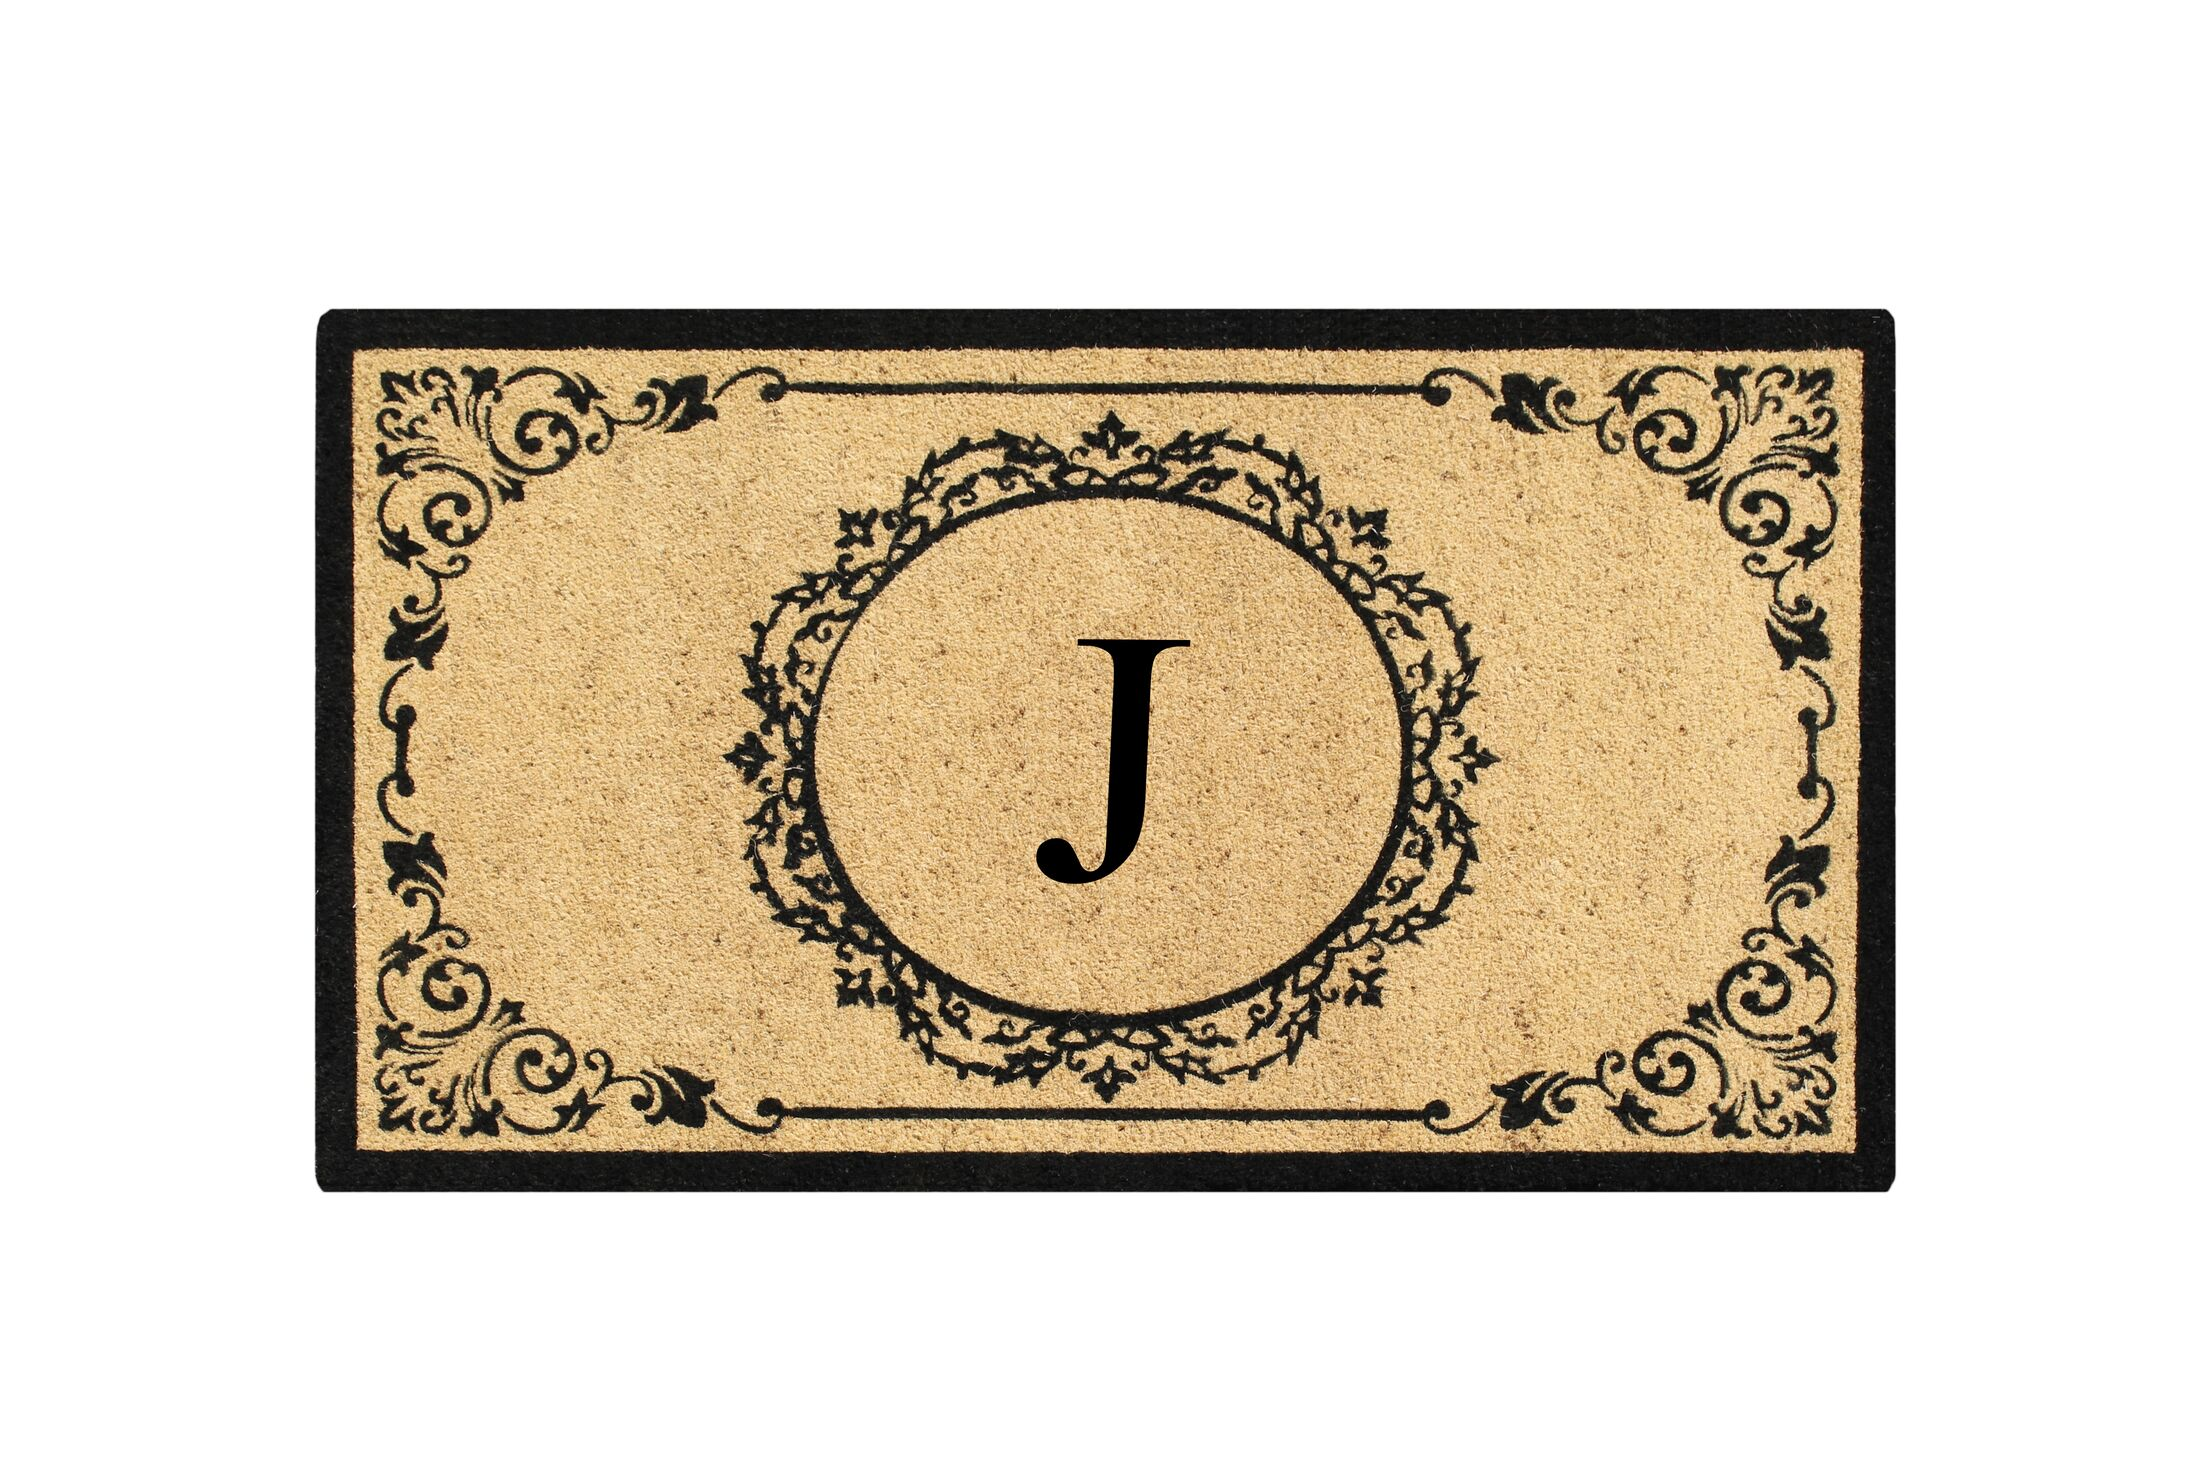 First Impression Engineered Anti Shred Treated Hanna Decorative Border Monogrammed Doormat Letter: J